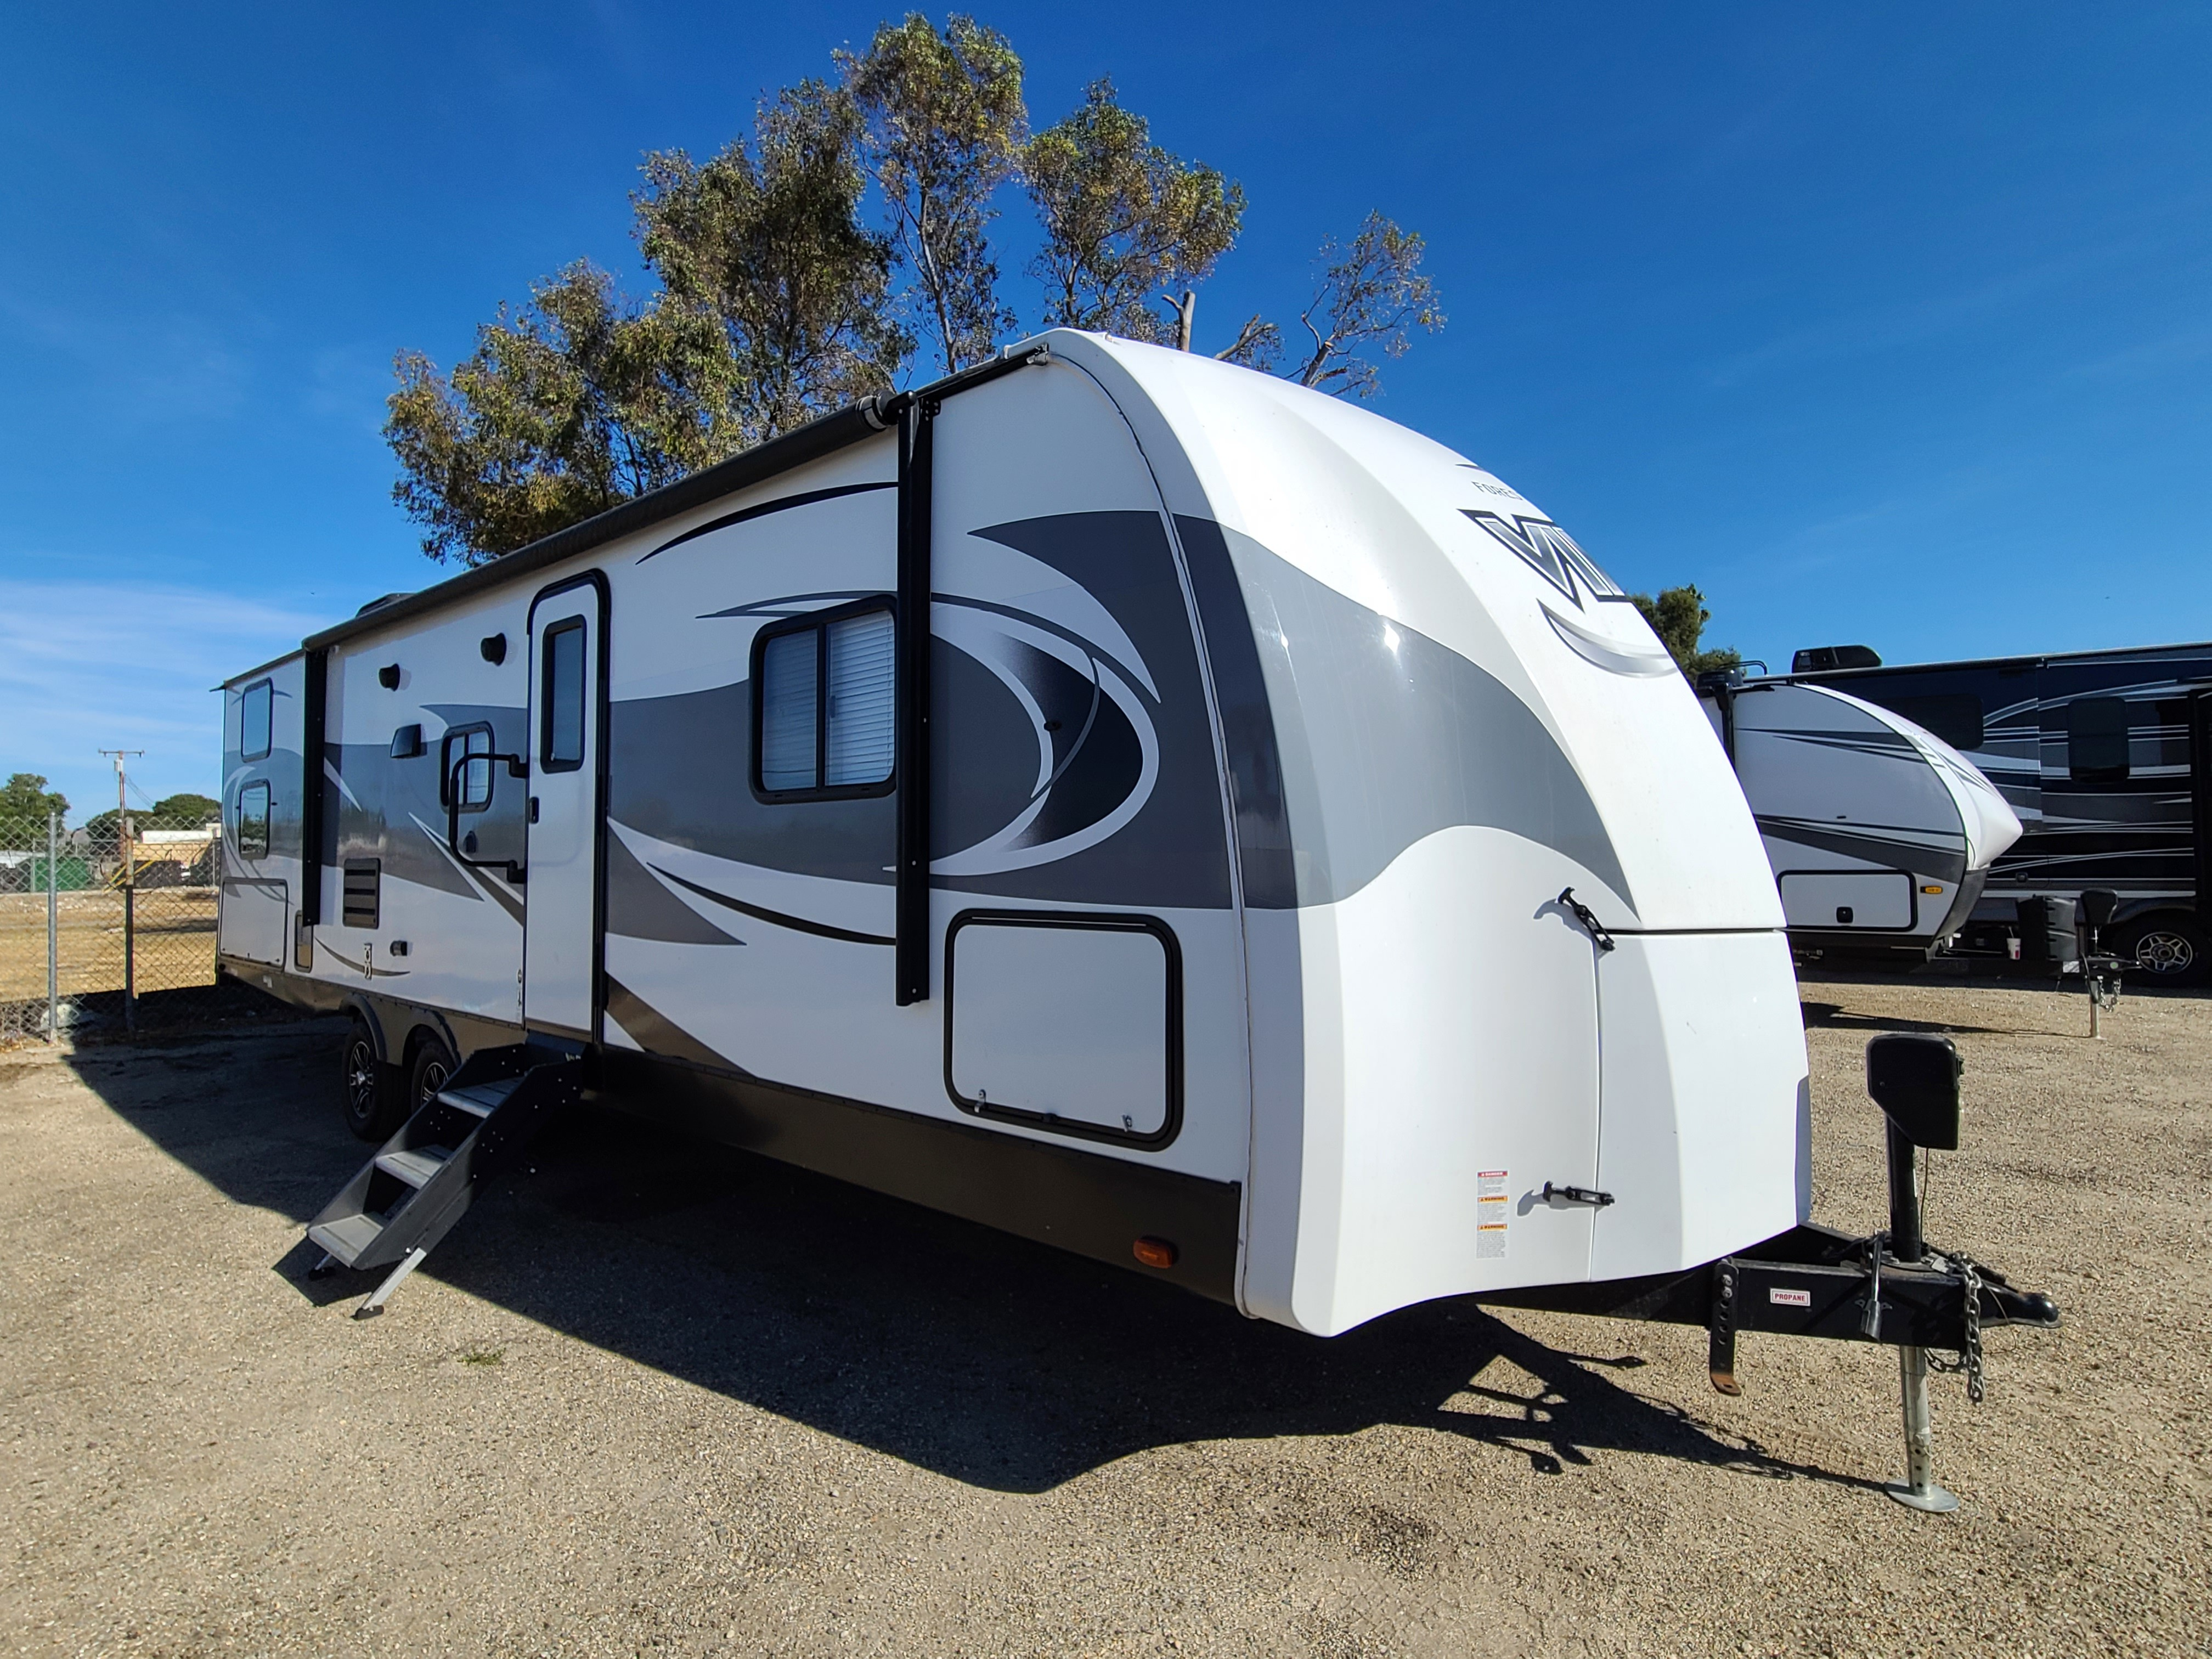 Used, 2018, Vibe, 272BHS, Travel Trailers